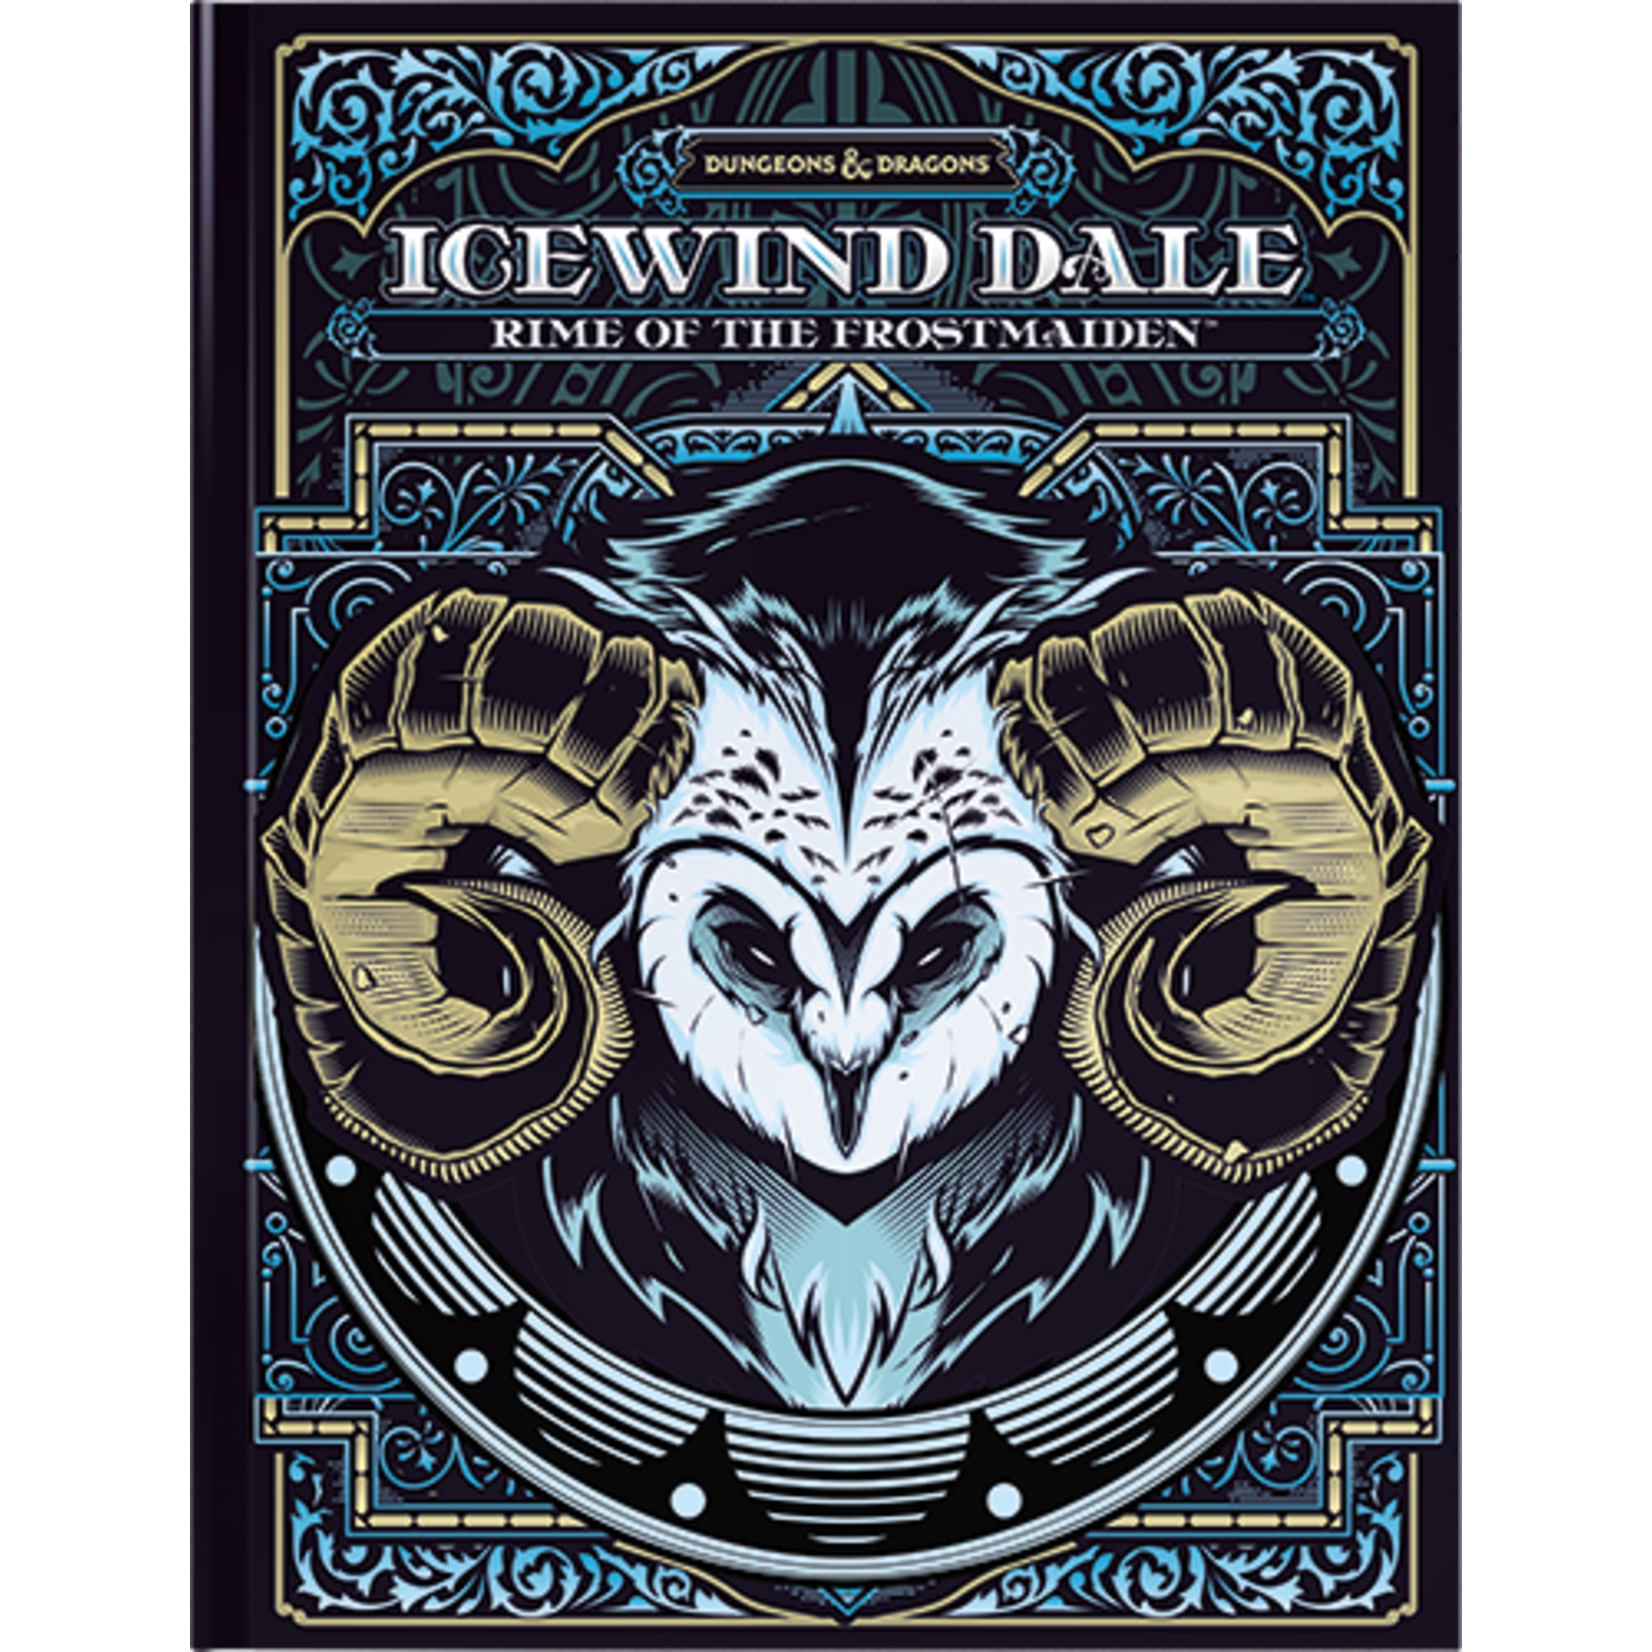 Wizards of the Coast Dungeons and Dragons 5th Edition: Icewind Dale Rime of the Frostmaiden [ALTERNATE COVER]